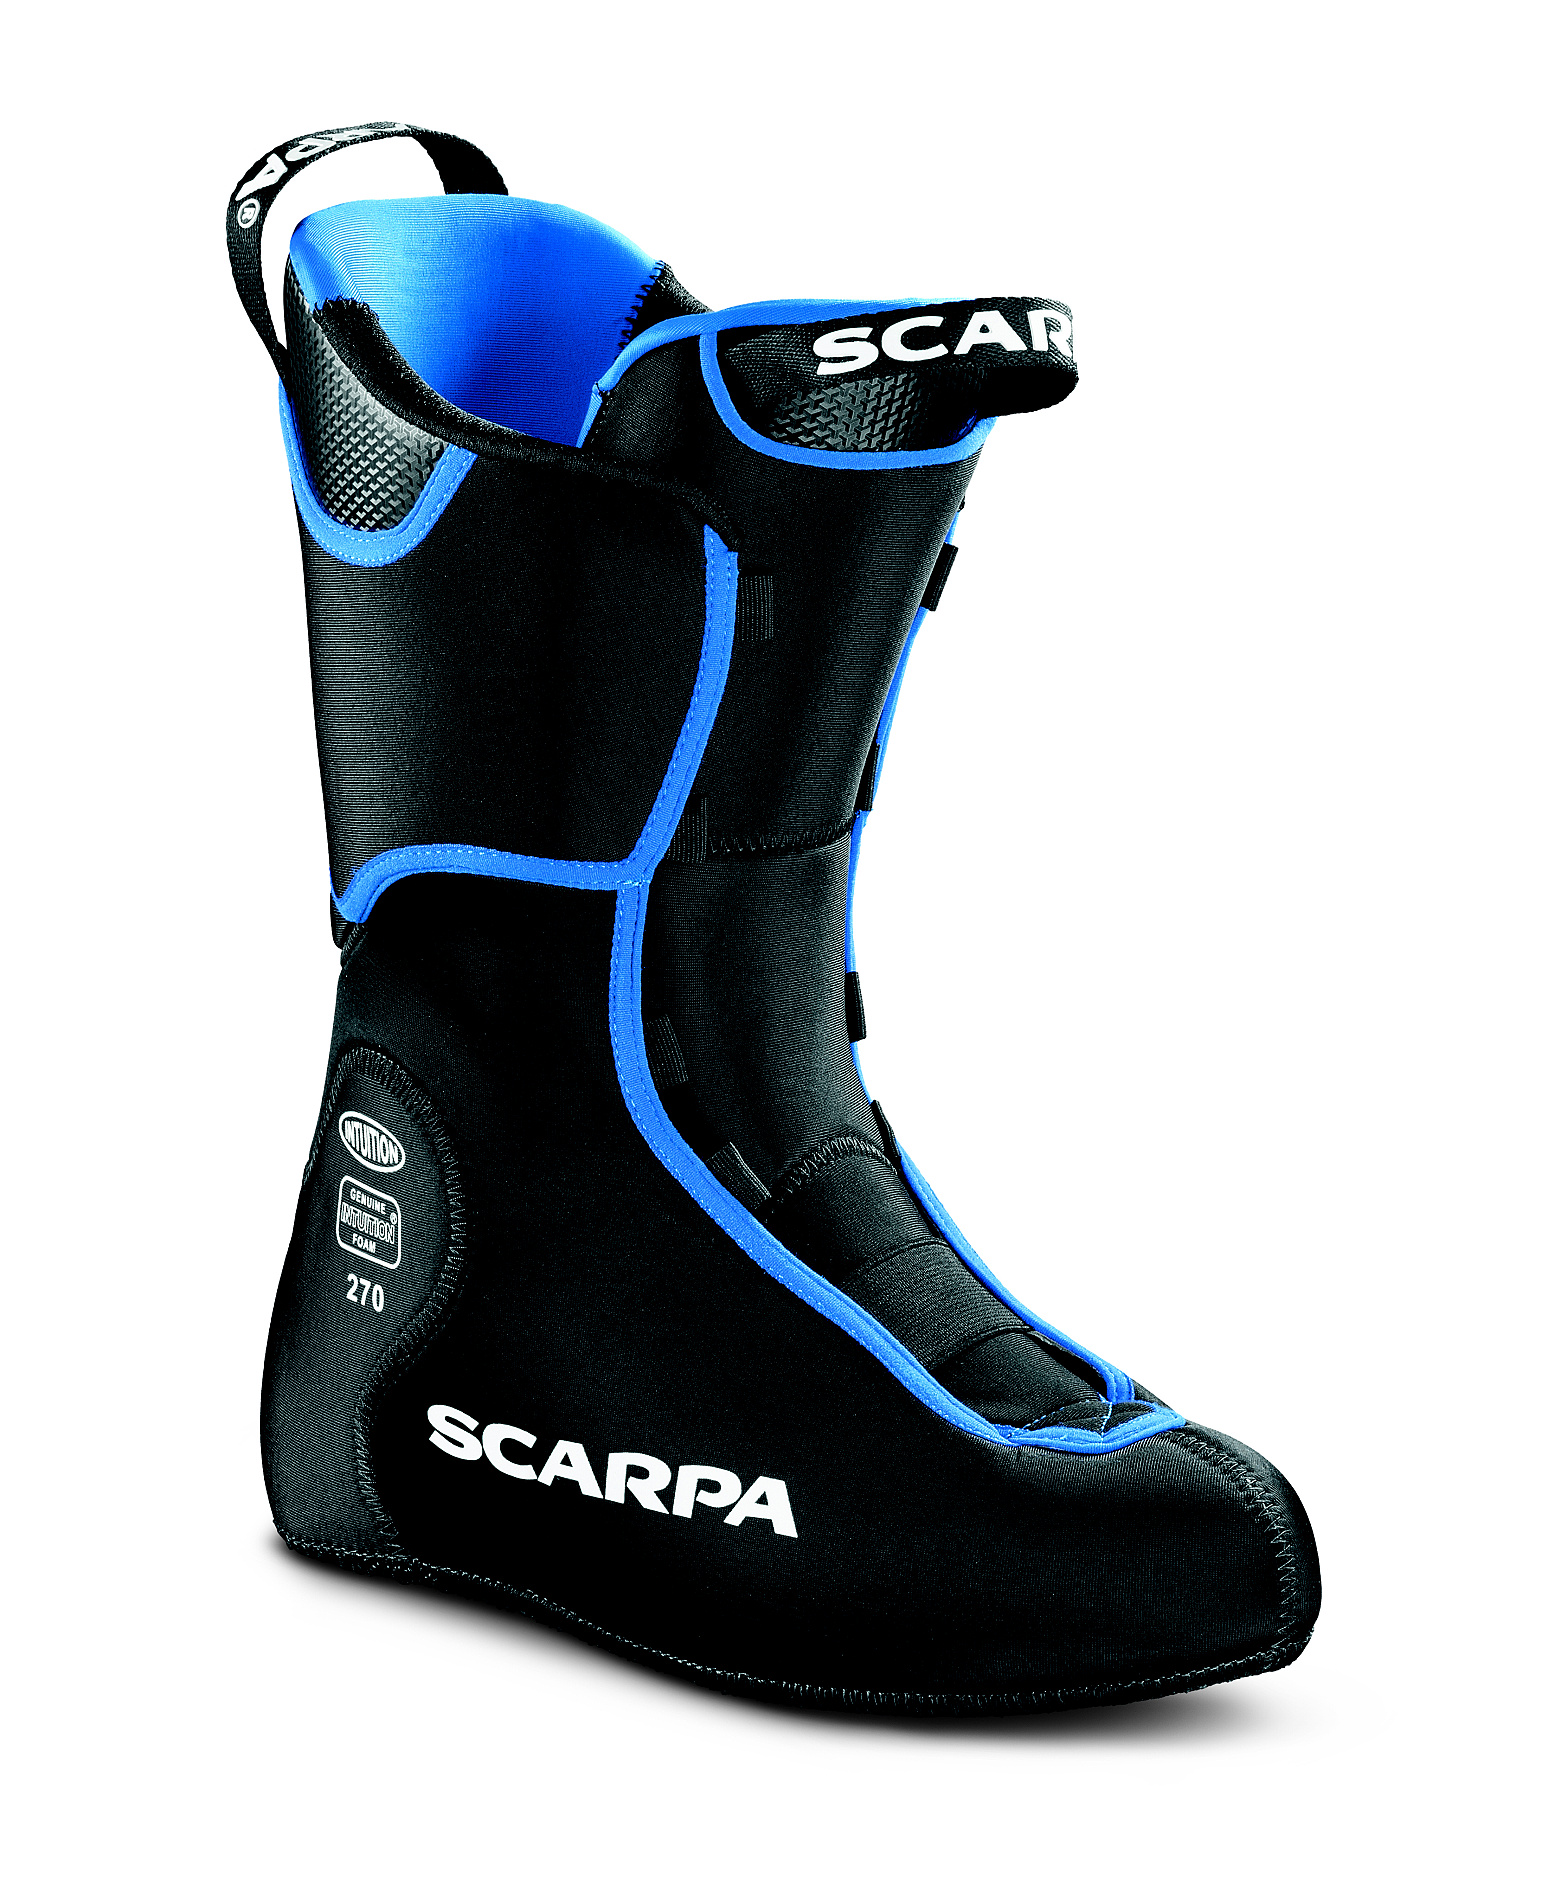 Scarpa_MAESTRALE RS_ProFlexPerf